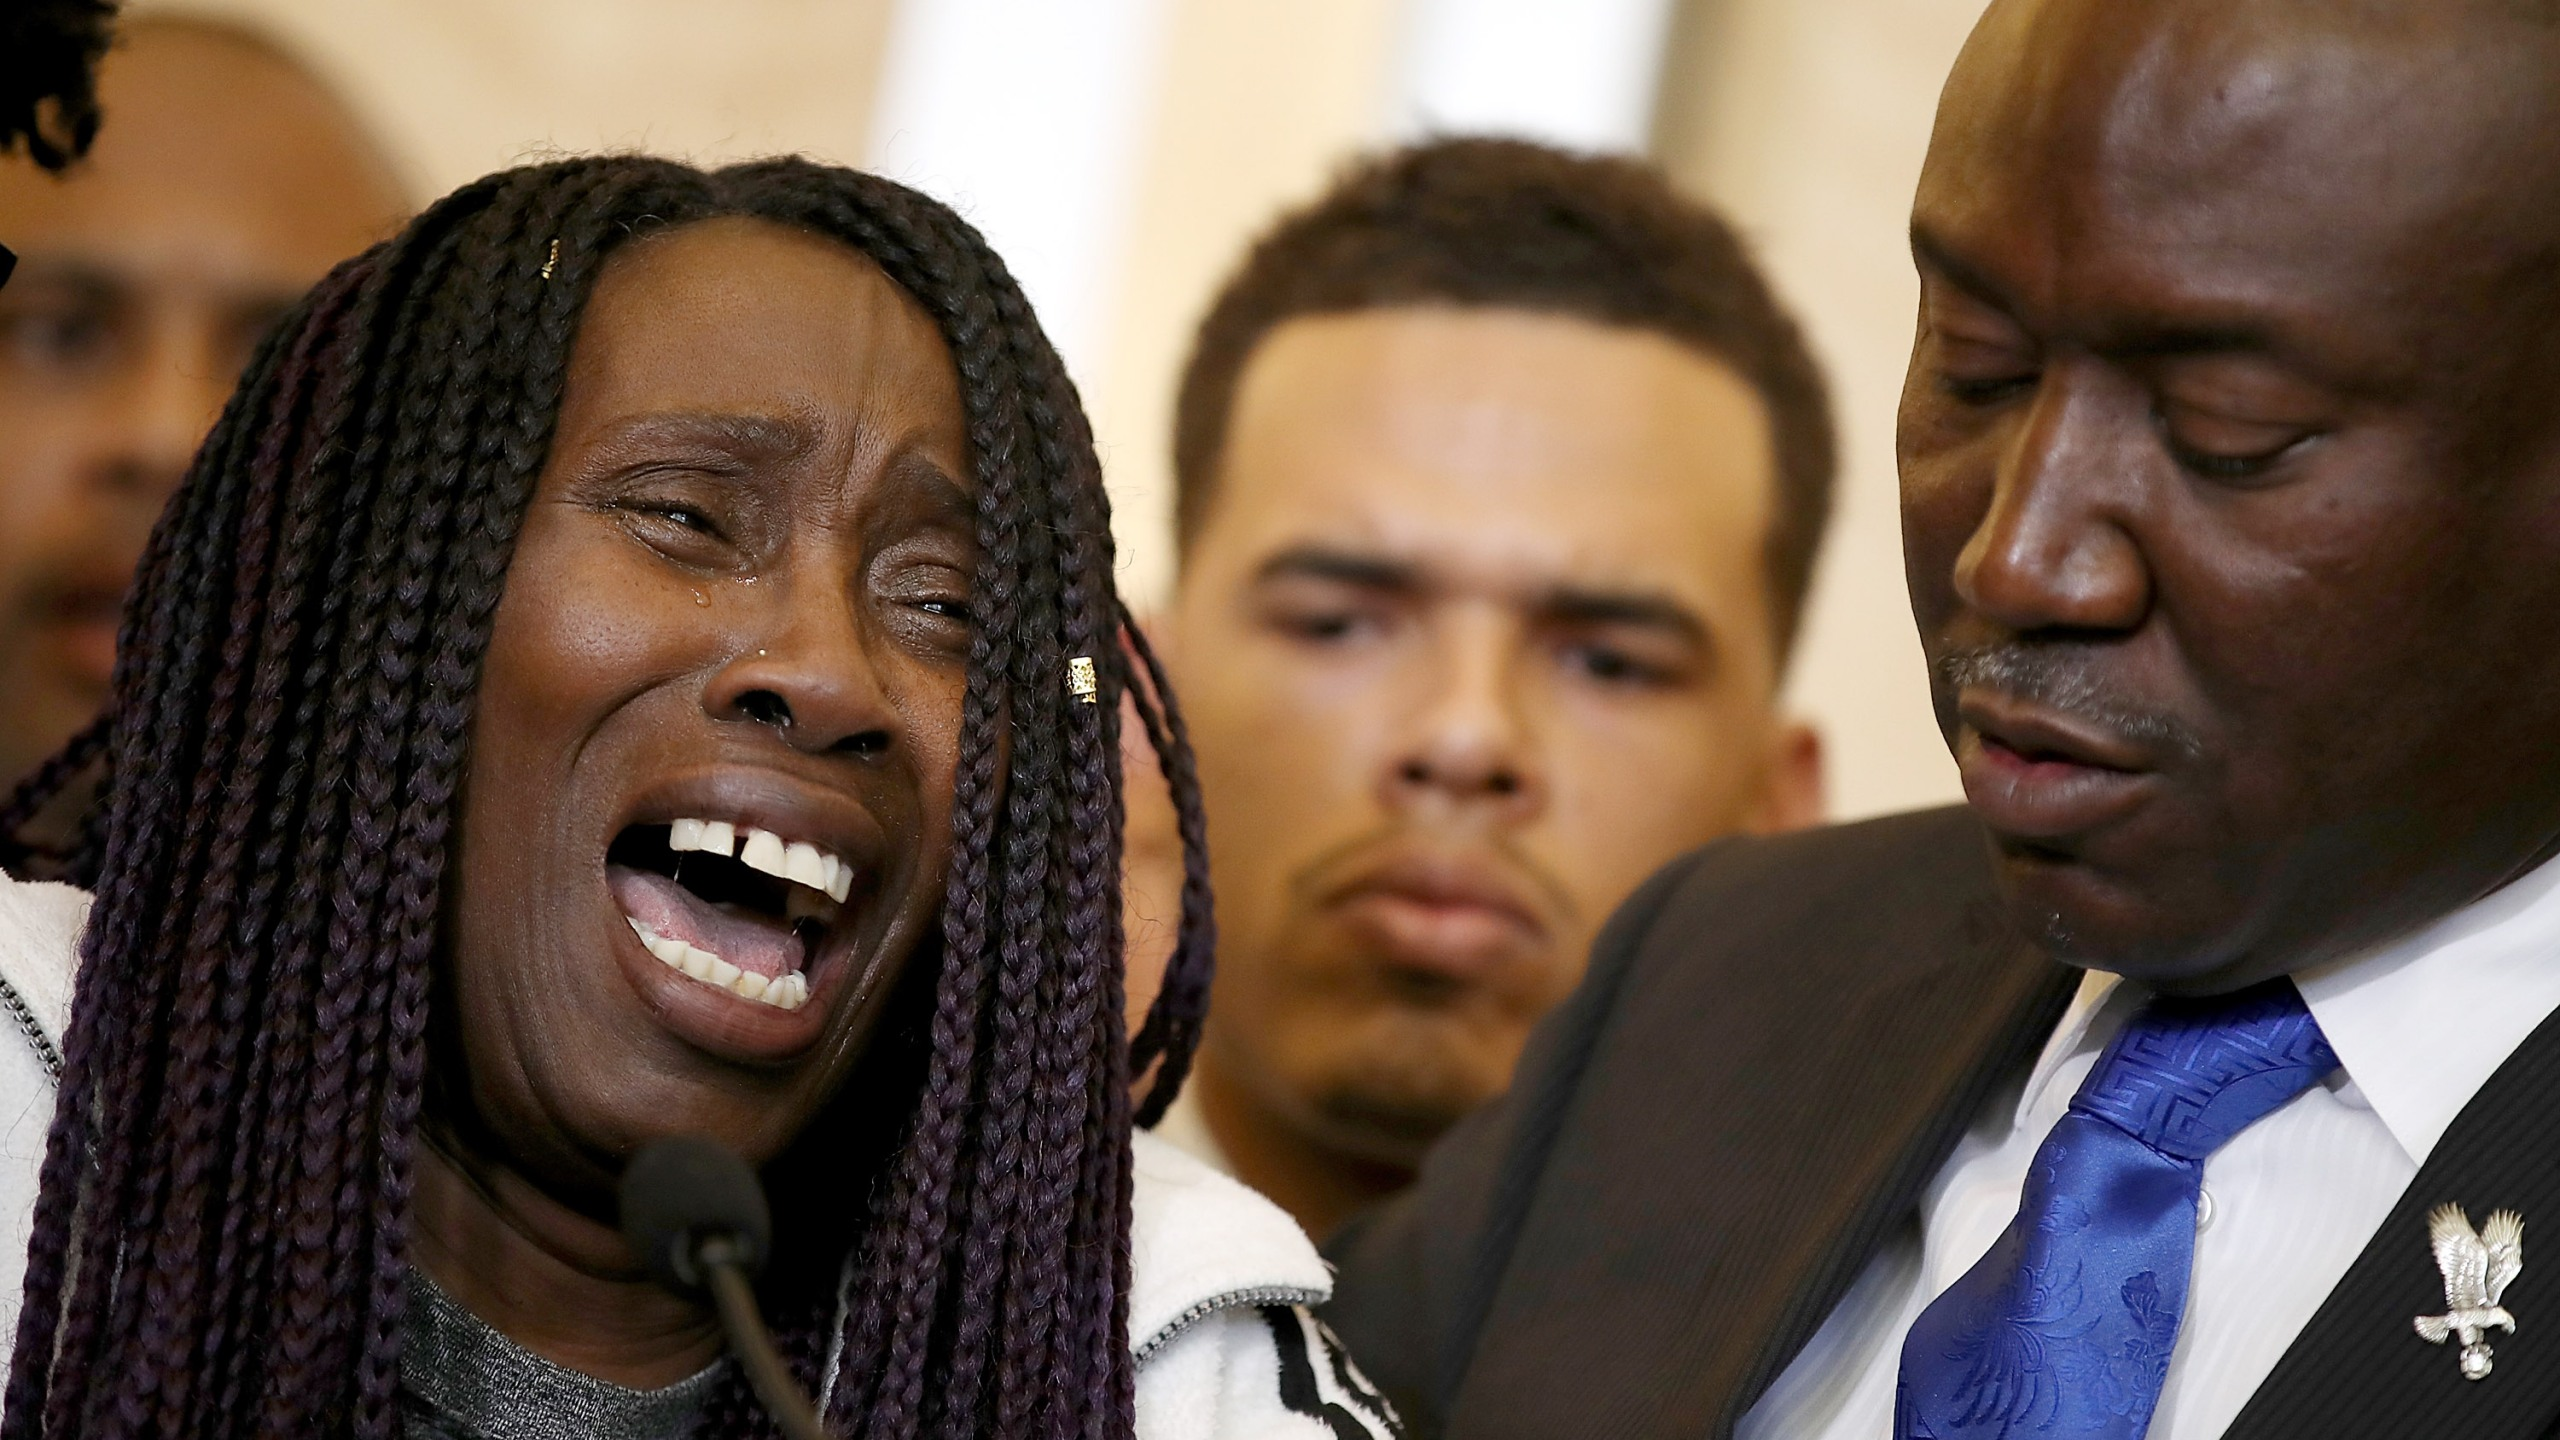 Sequita Thompson, left, grandmother of Stephon Clark, who was shot and killed by Sacramento police, cries as she speaks during a news conference with civil rights attorney Ben Crump on March 26, 2018, in Sacramento. (Credit: Justin Sullivan / Getty Images)